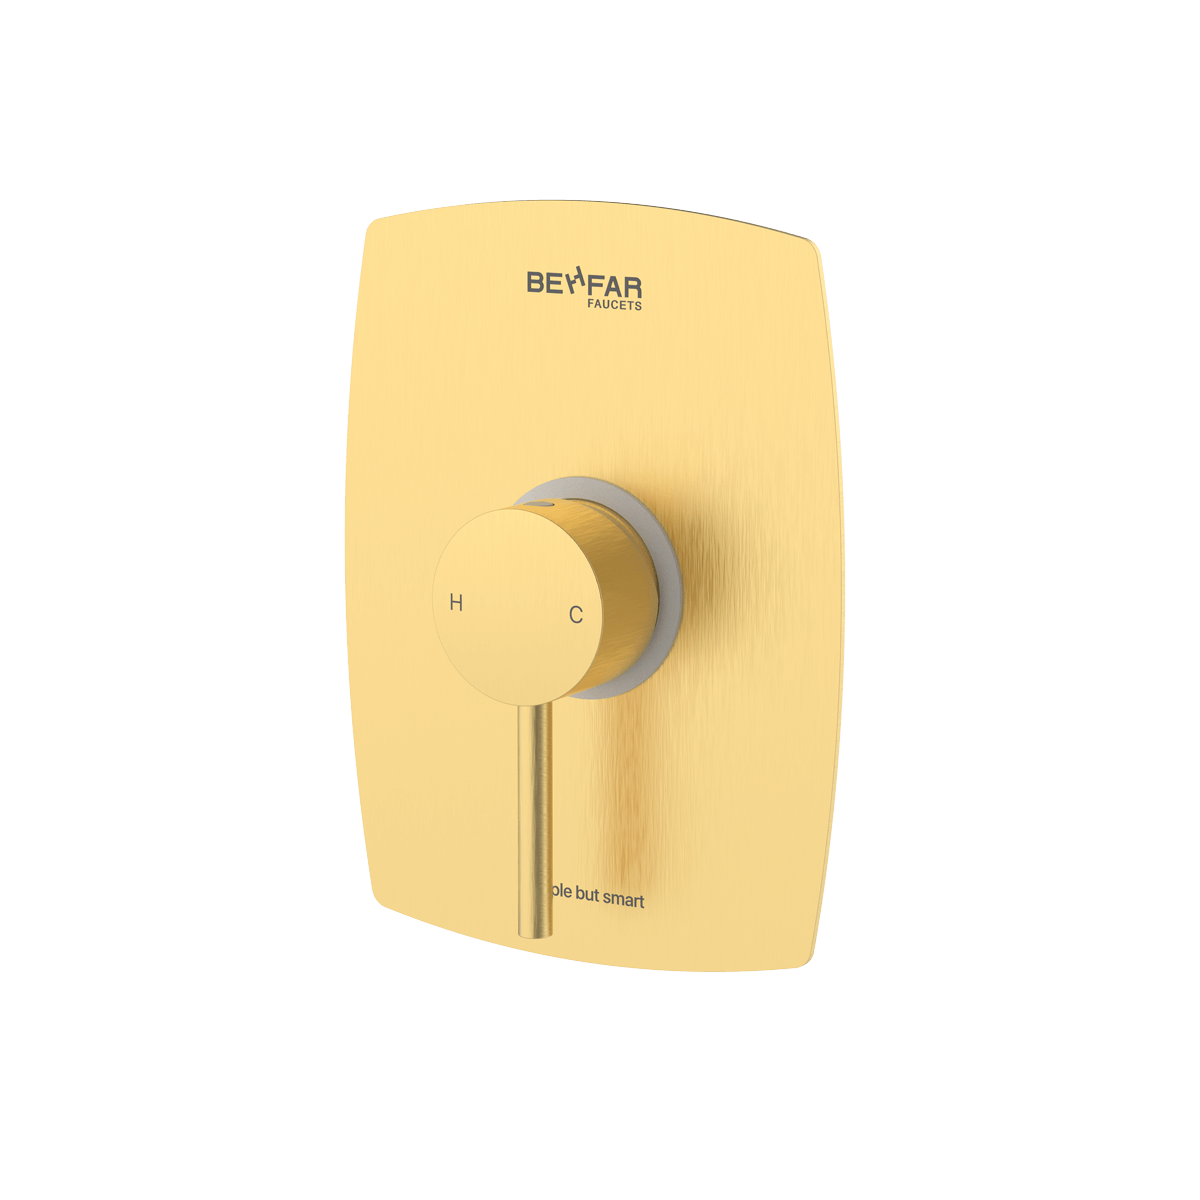 behfar brushed gold toilet concealed with ibox plate b